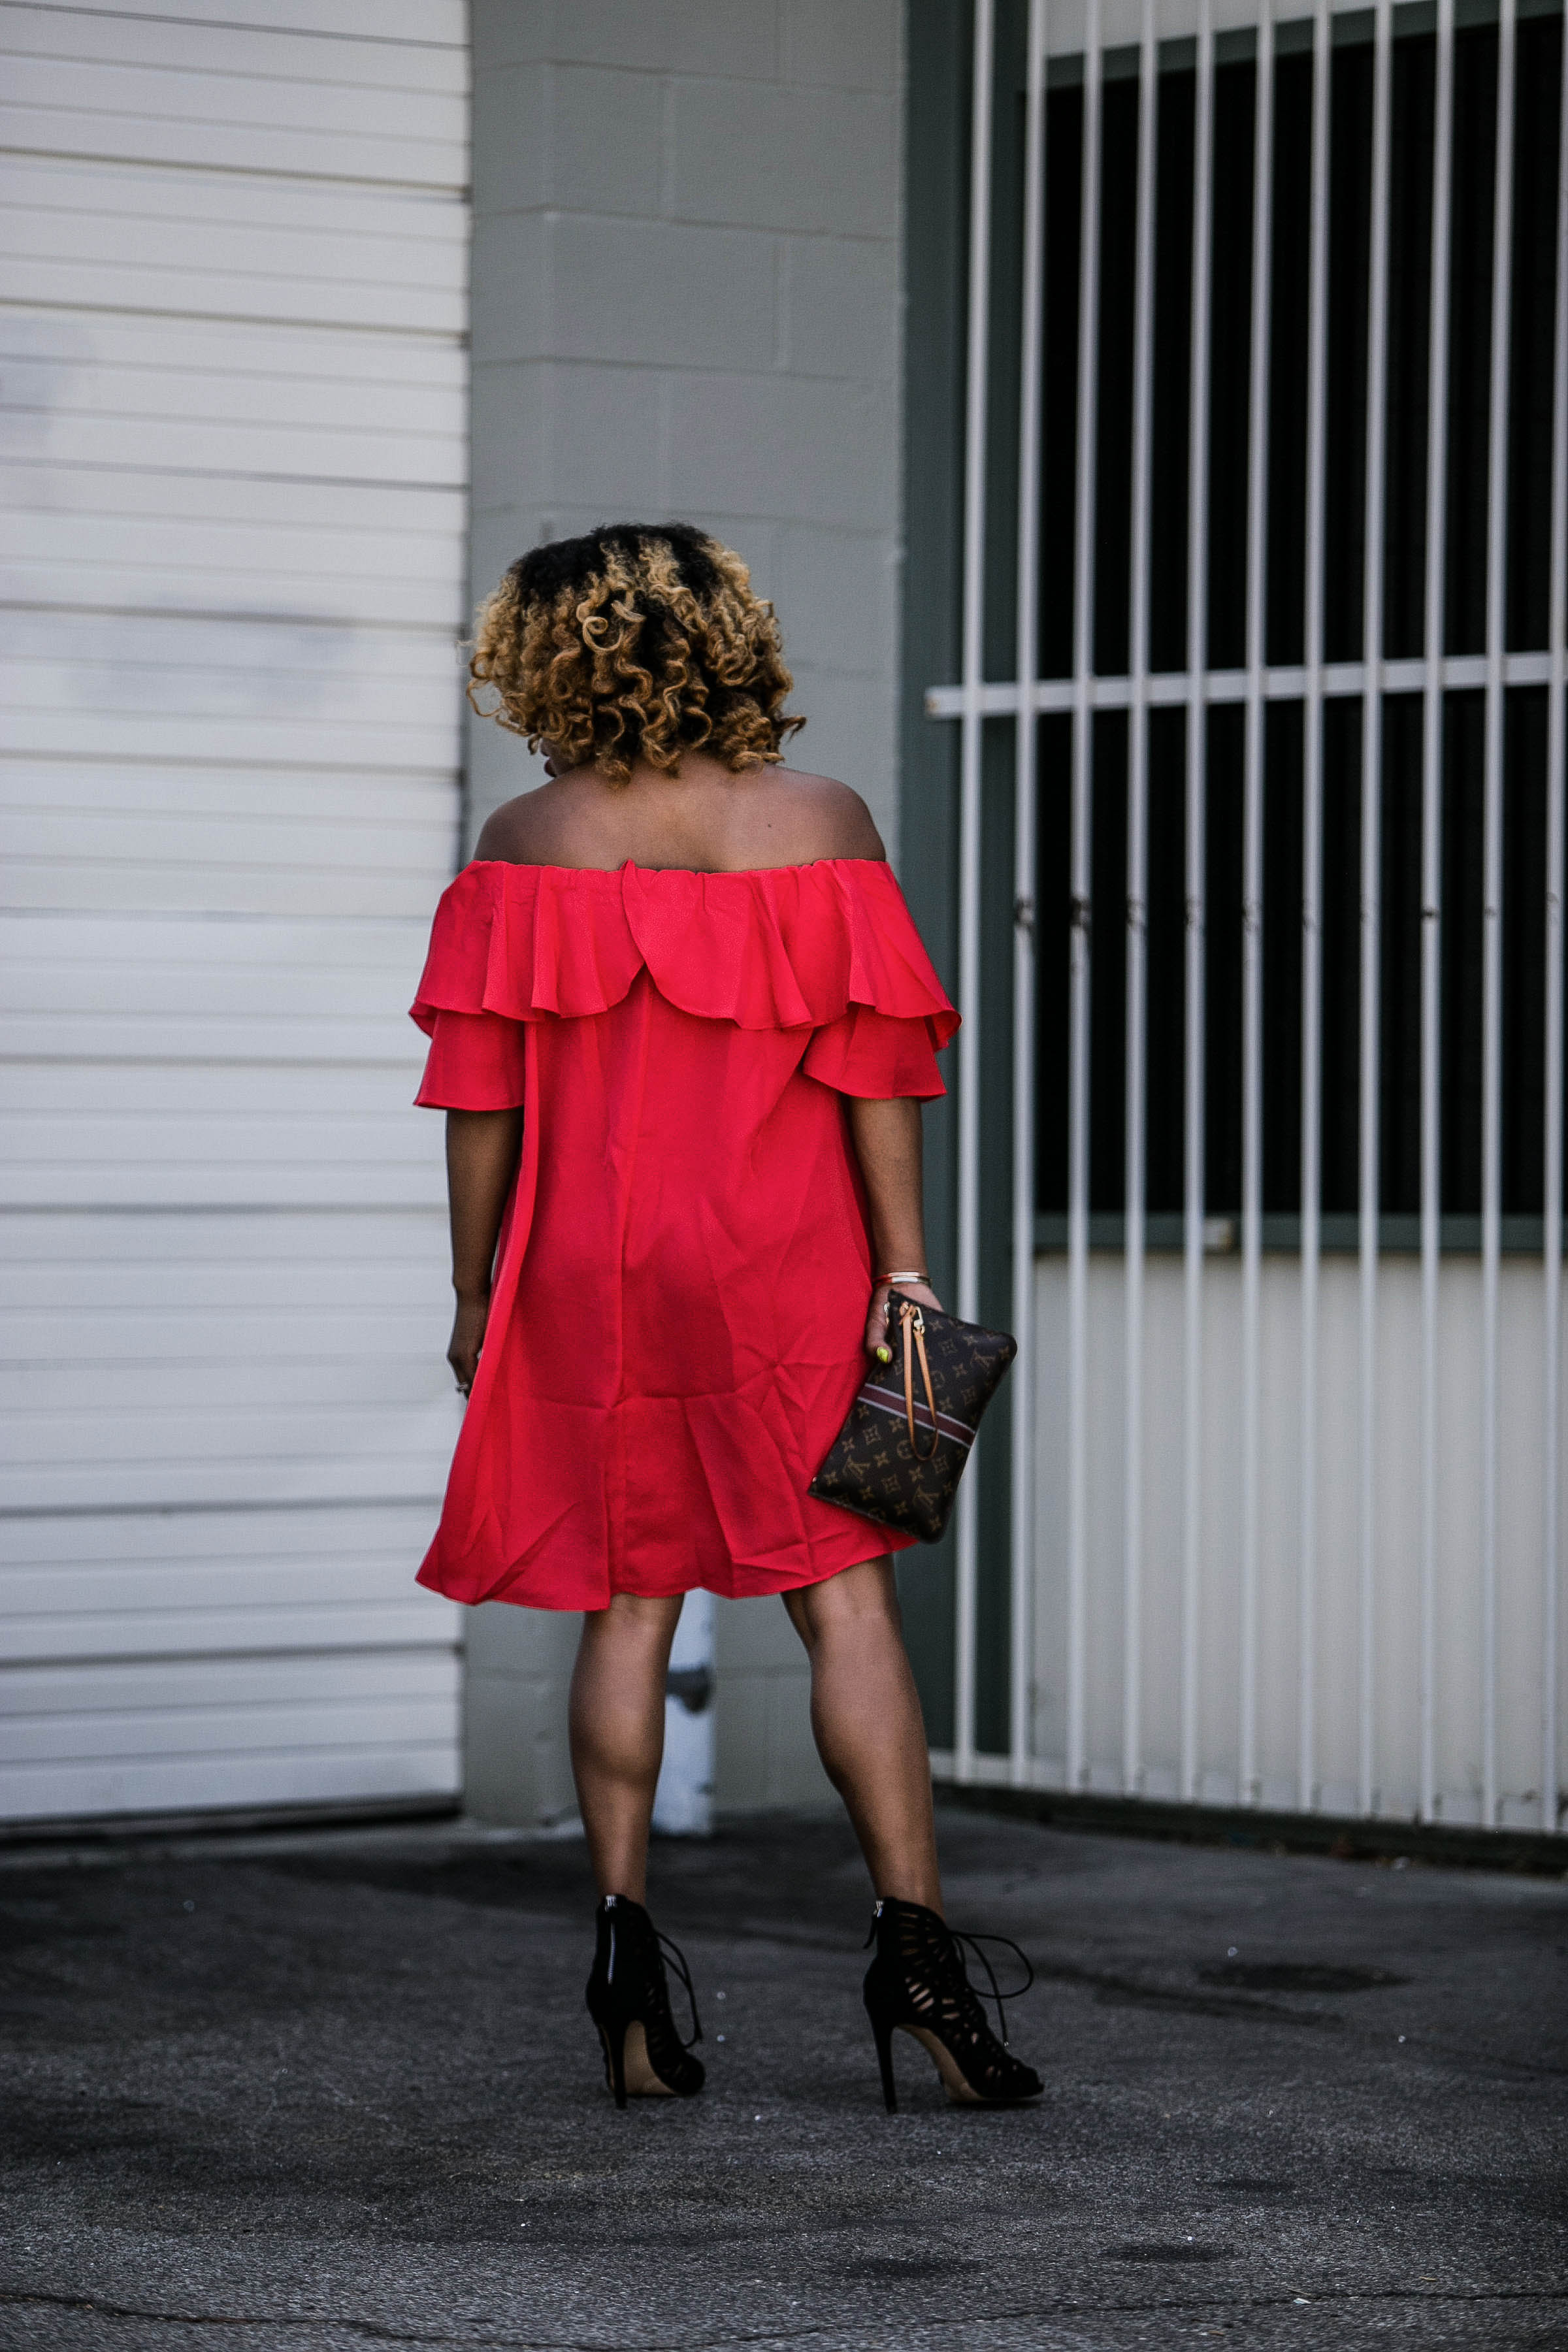 Behind The Scenes In She Inside - https://thehautemommie.com/lady-in-the-red-dress/